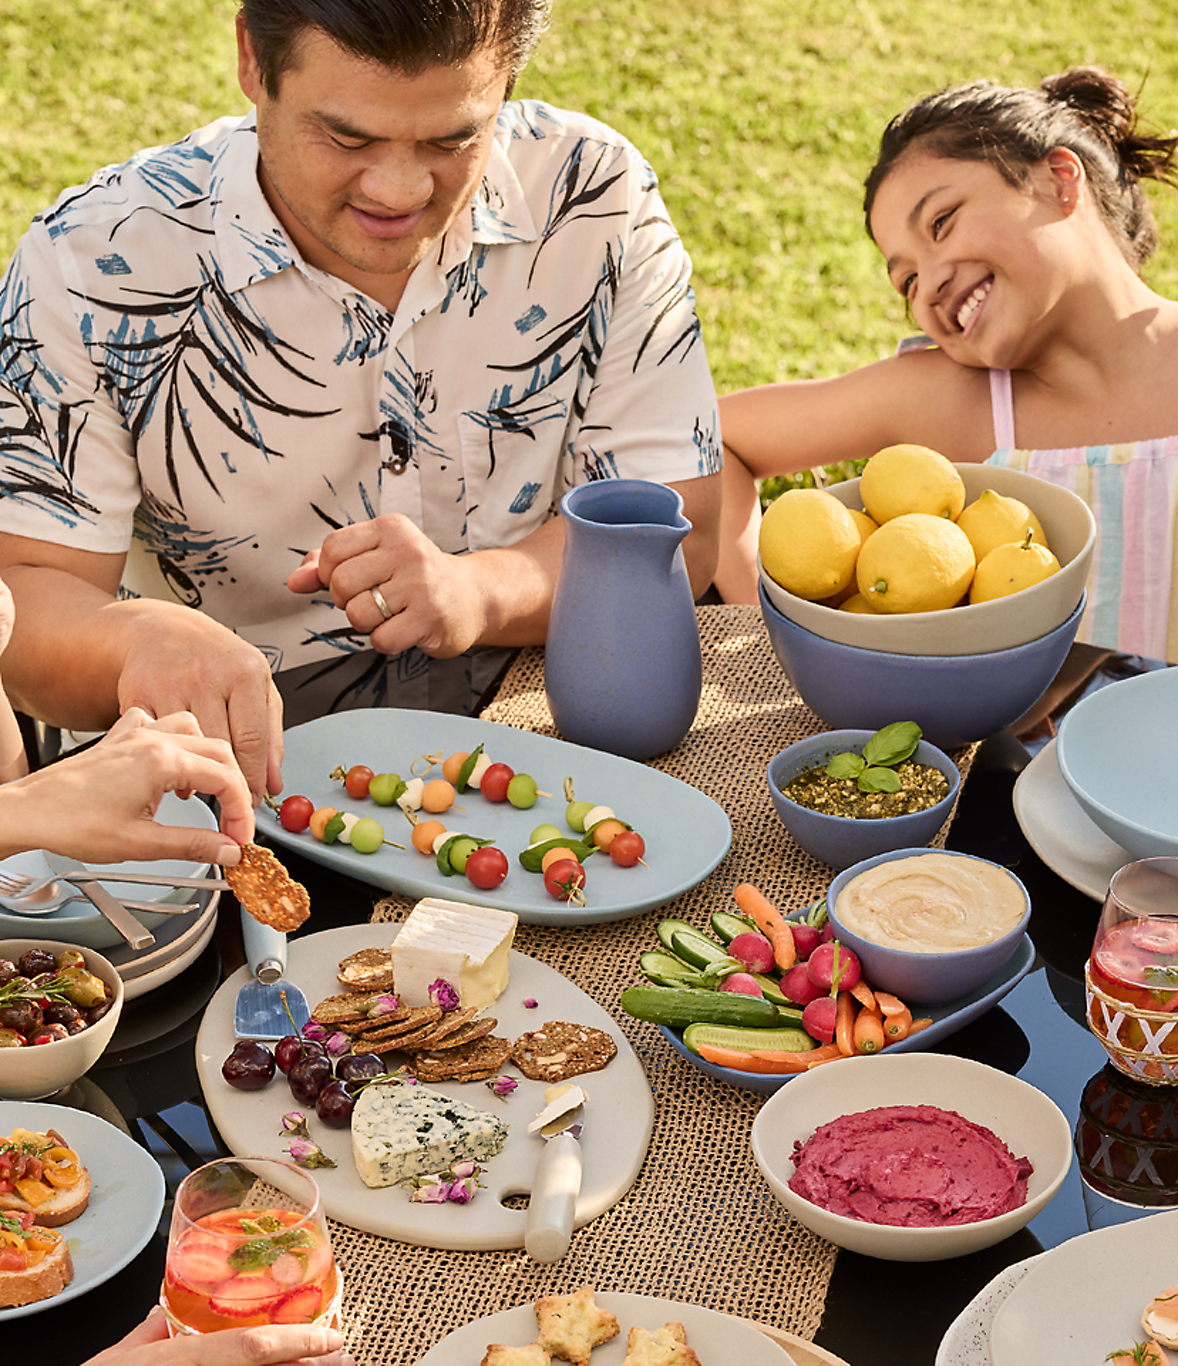 Shop everything you need for the perfect picnic